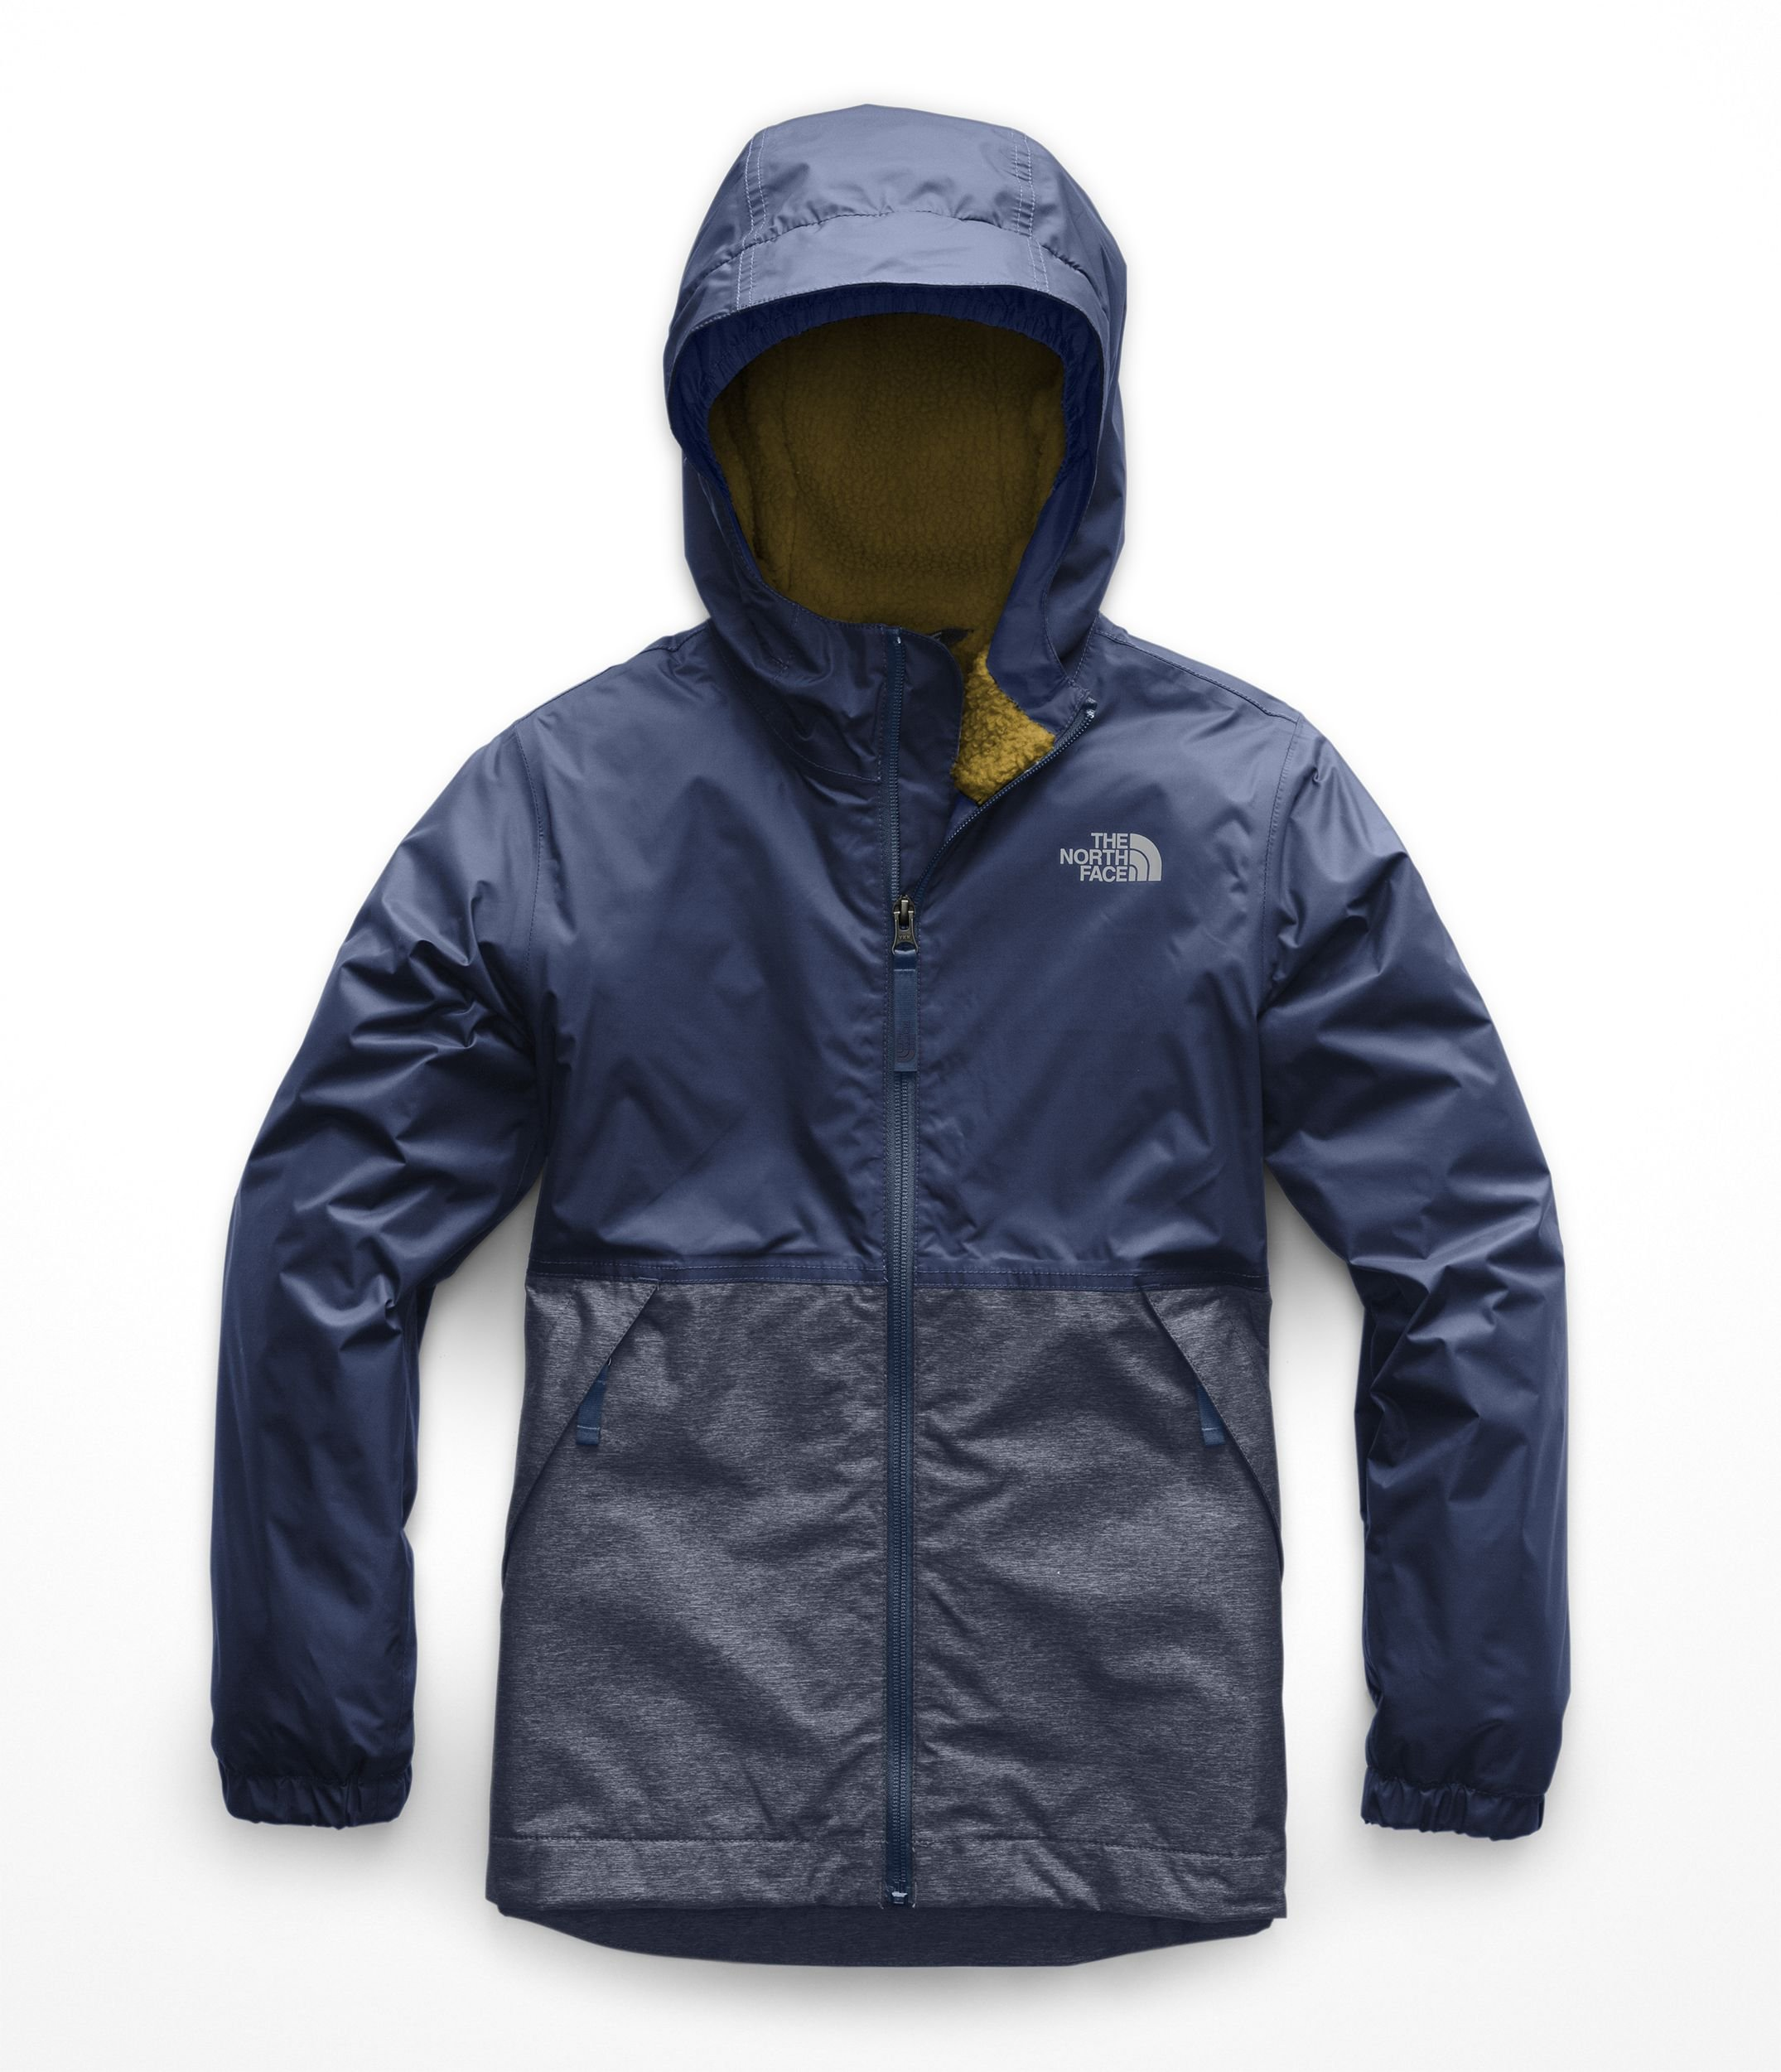 The North Face Boy's Warm Storm Jacket - Shady Blue - XL by The North Face